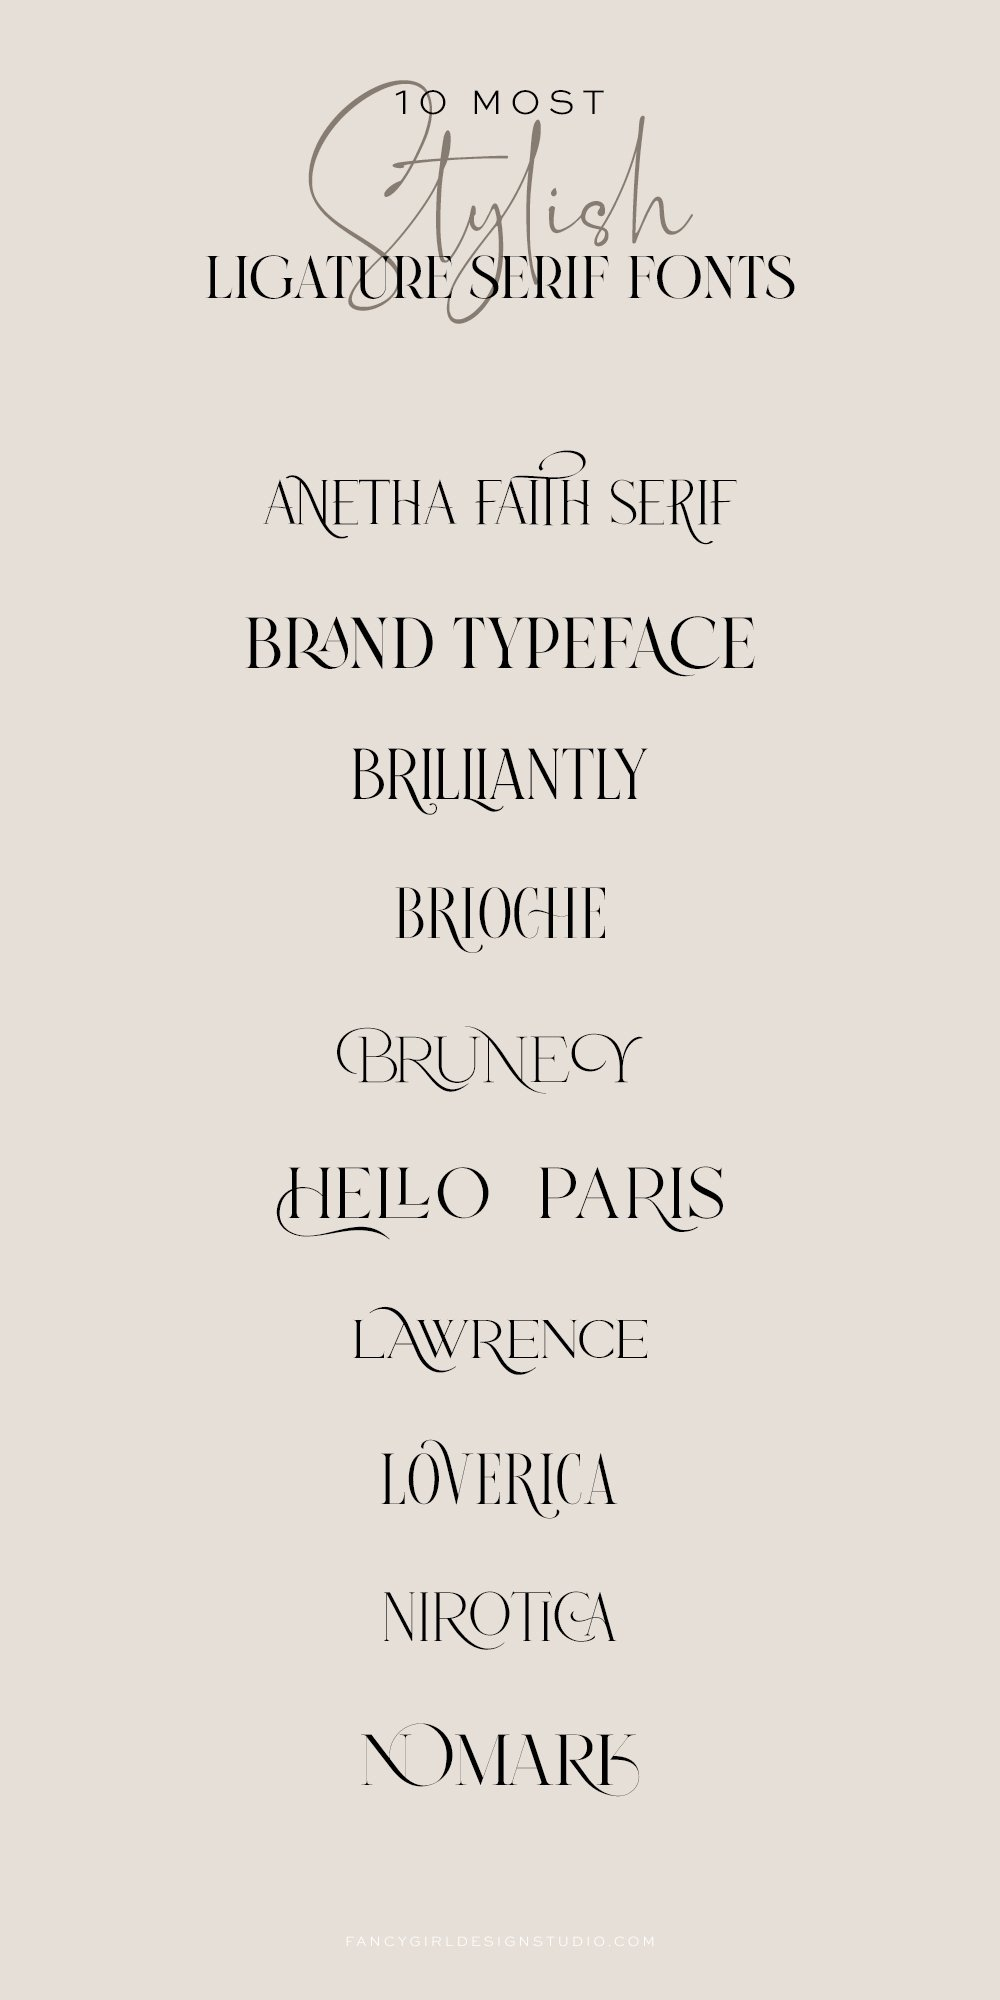 top 10 most stylish ligature serif fonts for branding